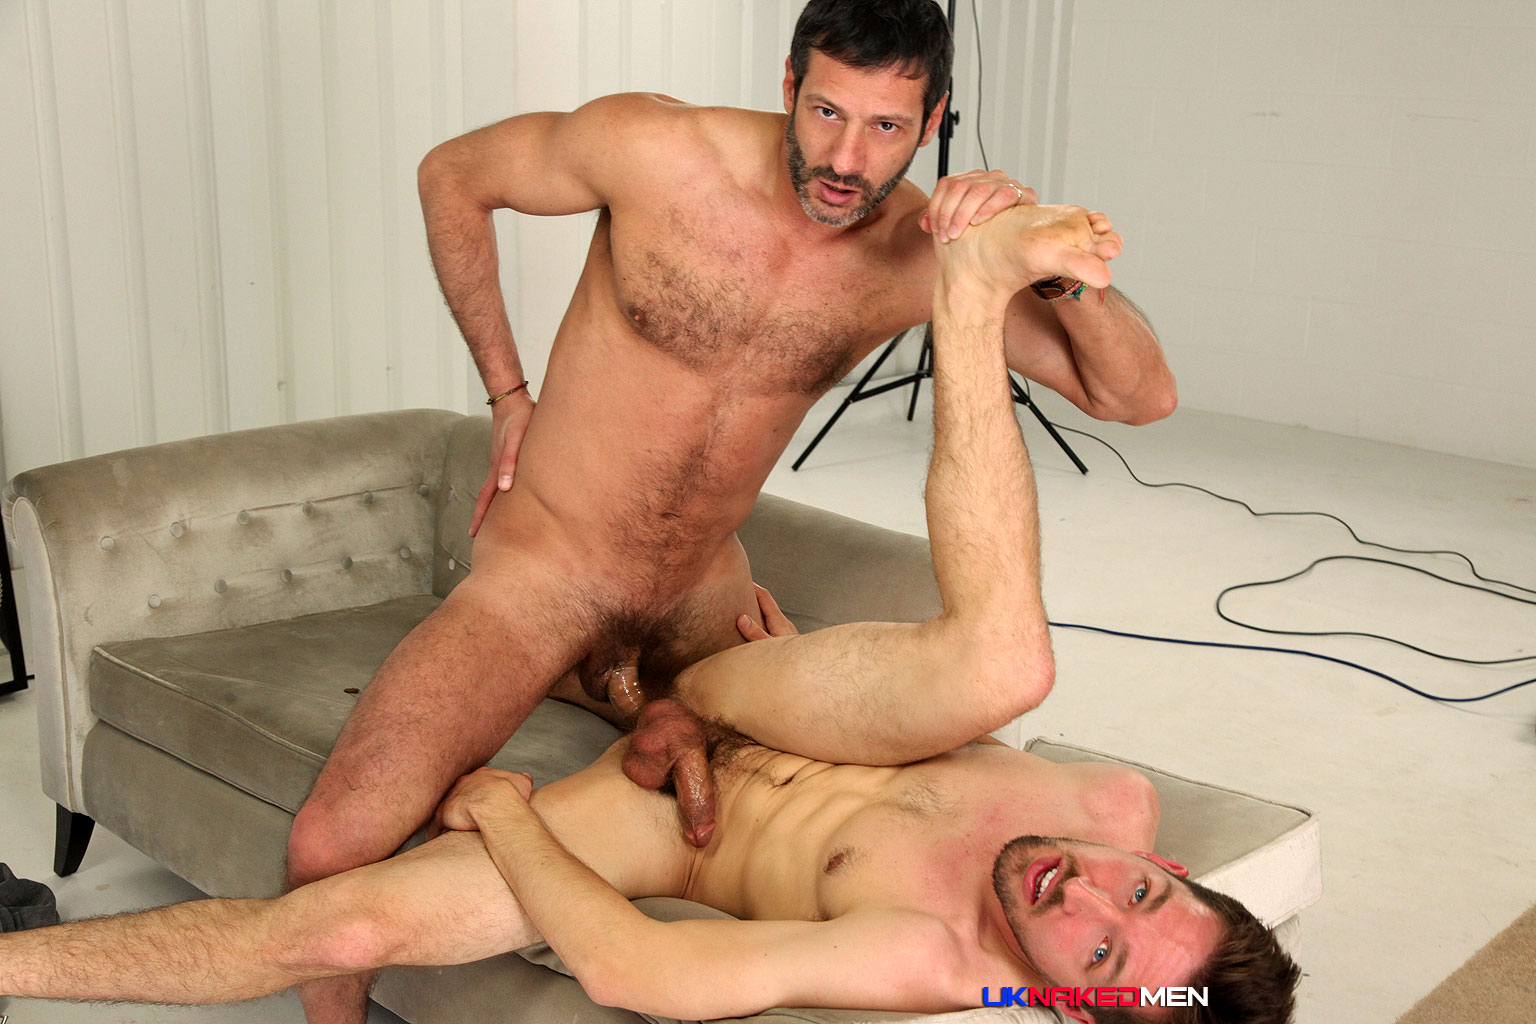 hairy naked gay men fucking